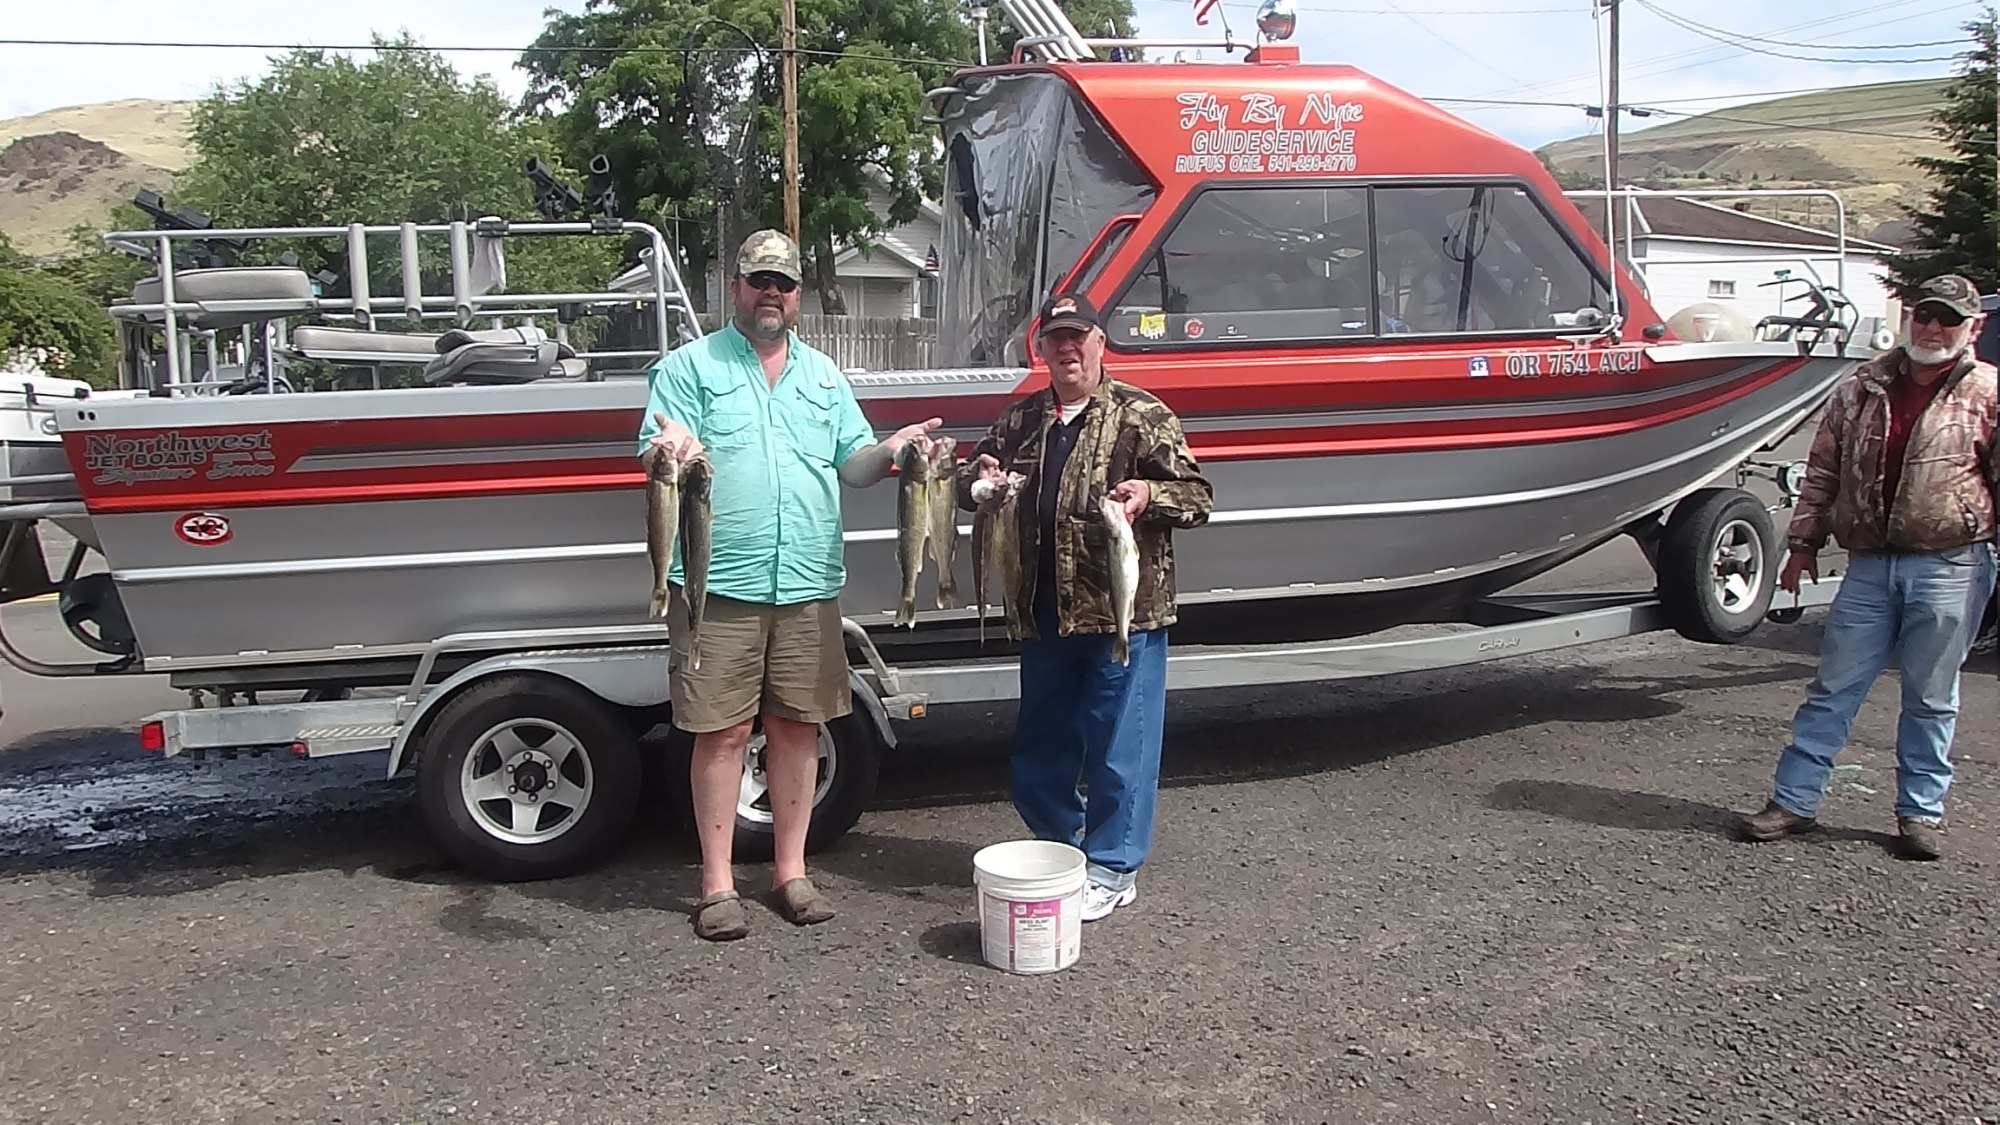 Angler Brad & Maurice Halleck: Fish of the Week June 8, 2012